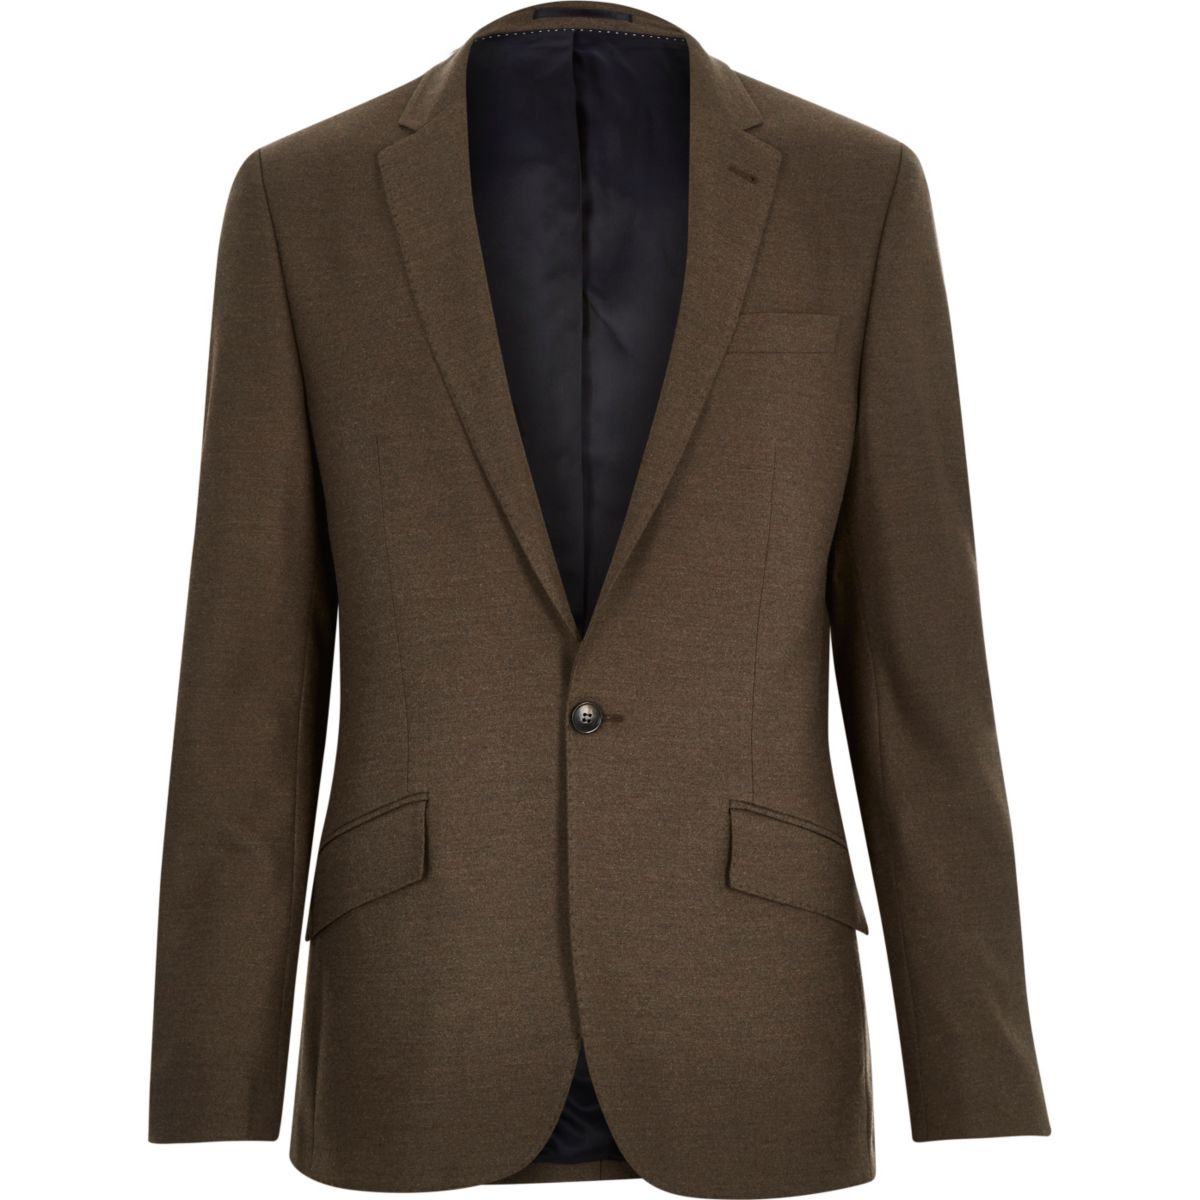 Veste de costume cintrée marron coupe slim